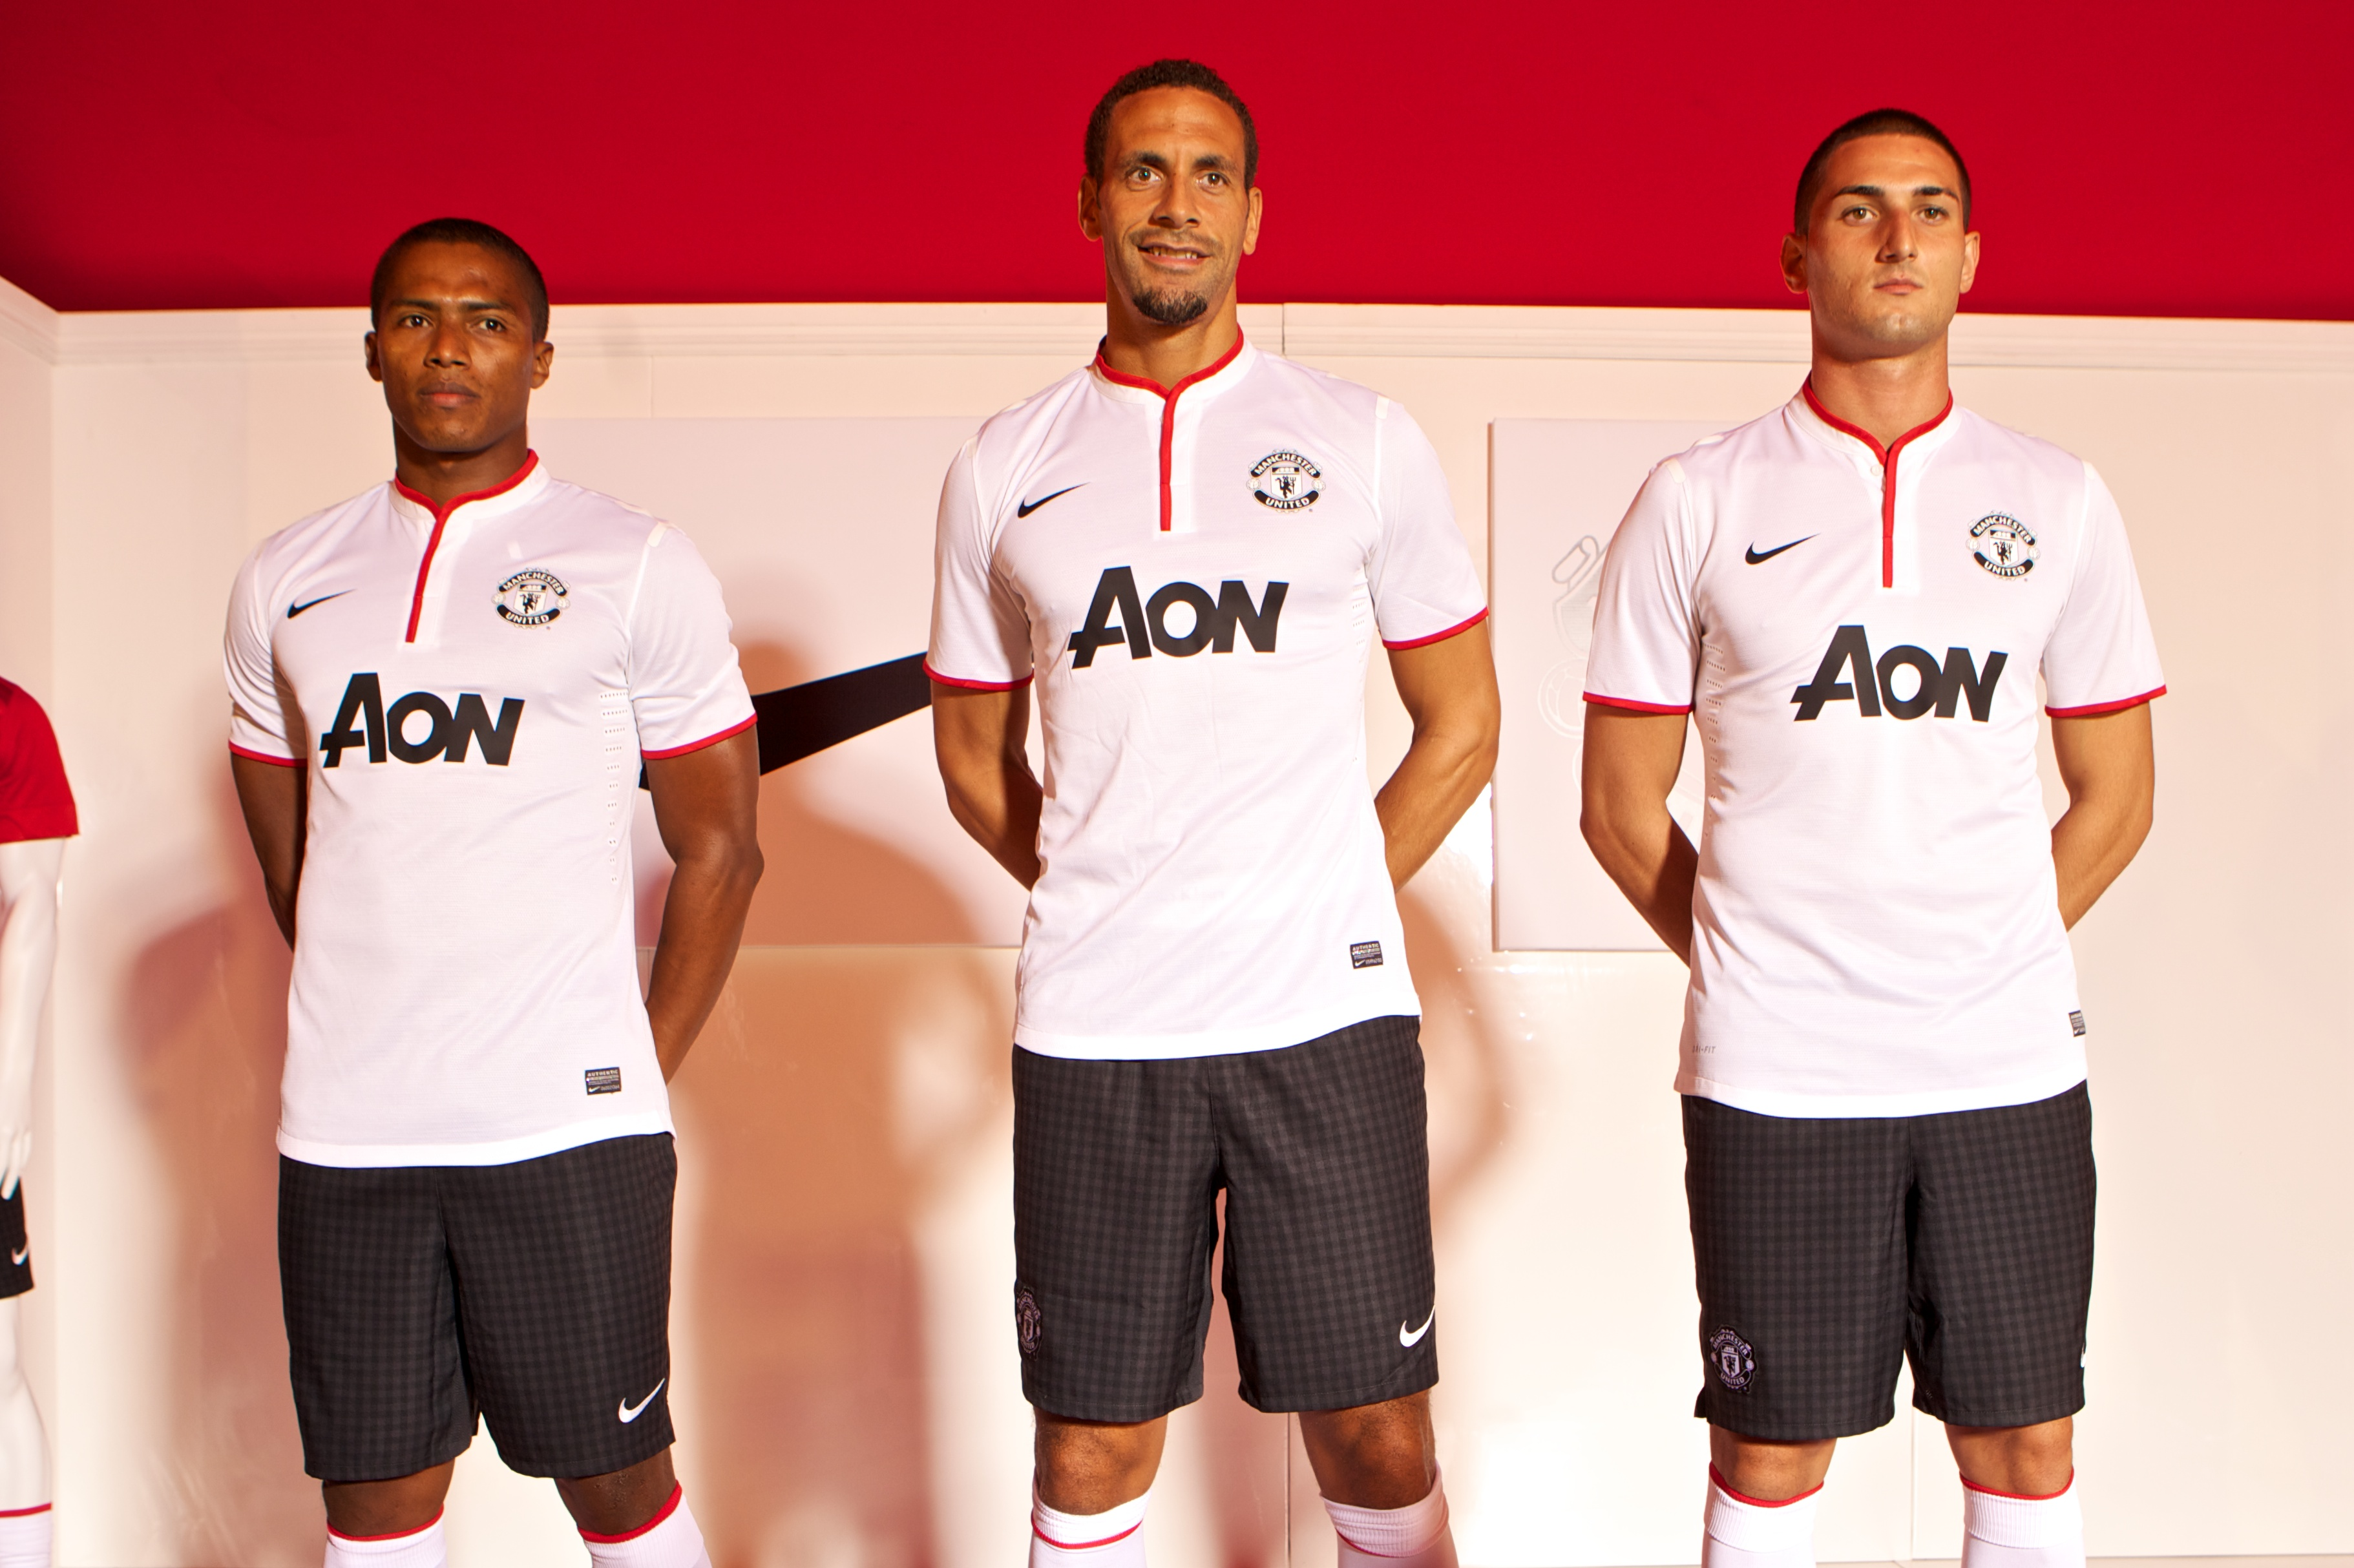 reputable site 3b3f3 f48dc NIke Unveils Manchester United's Away Kit for 2012-13 – All ...